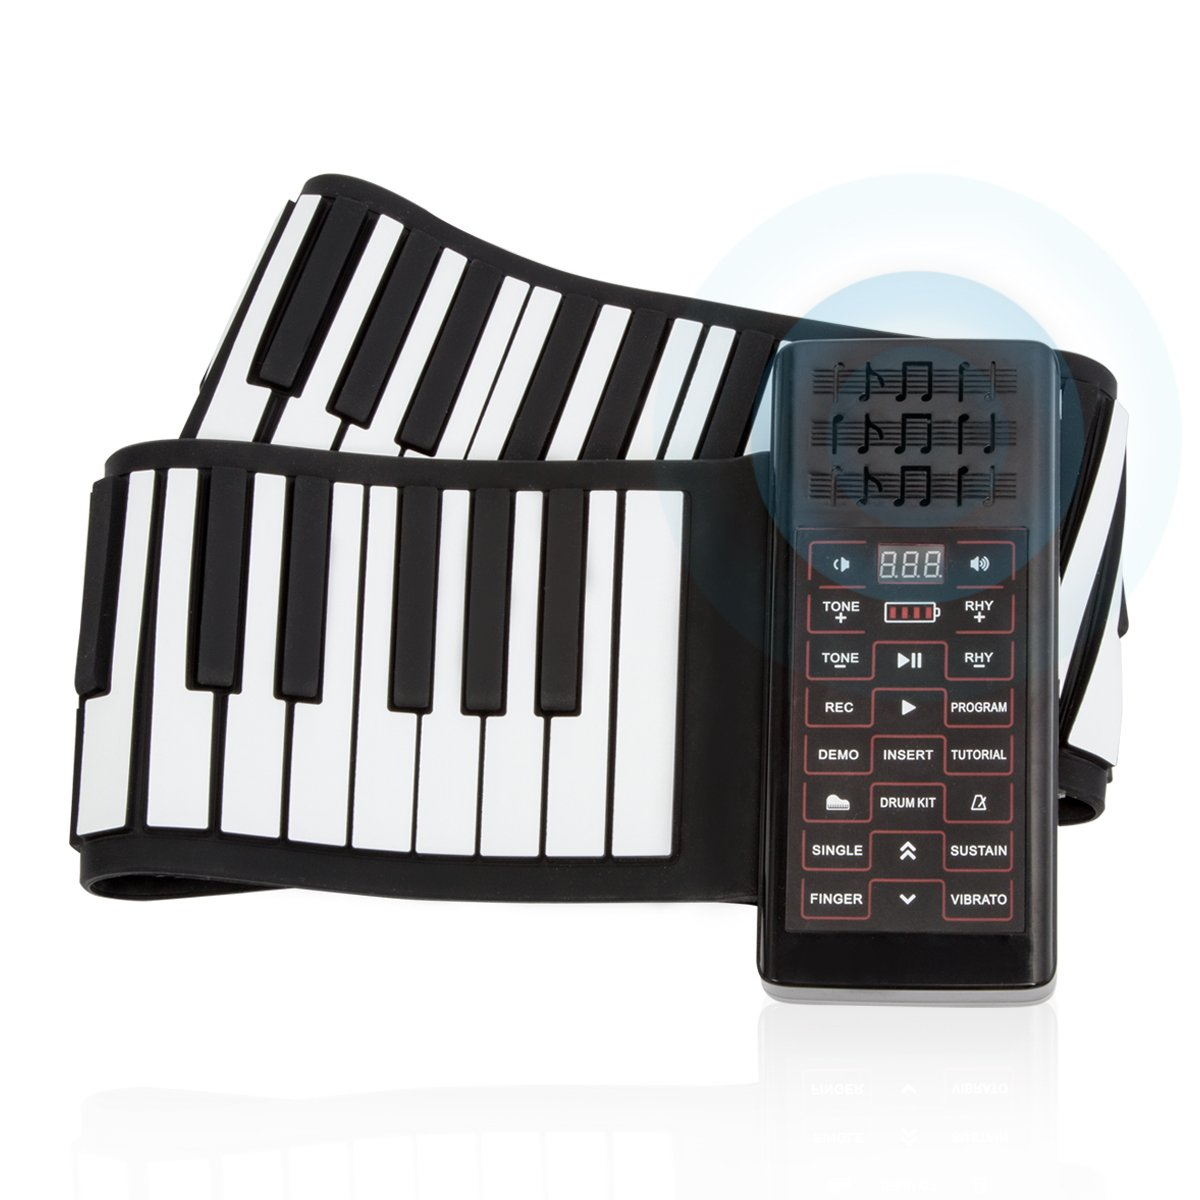 JouerNow RUP002 88 Thickened-Keys Roll Up Piano Synthesizer/Electronic Flexible Silicone Keyboard Hand-rolling Piano with Battery-sustained Pedal, US plug 595539307